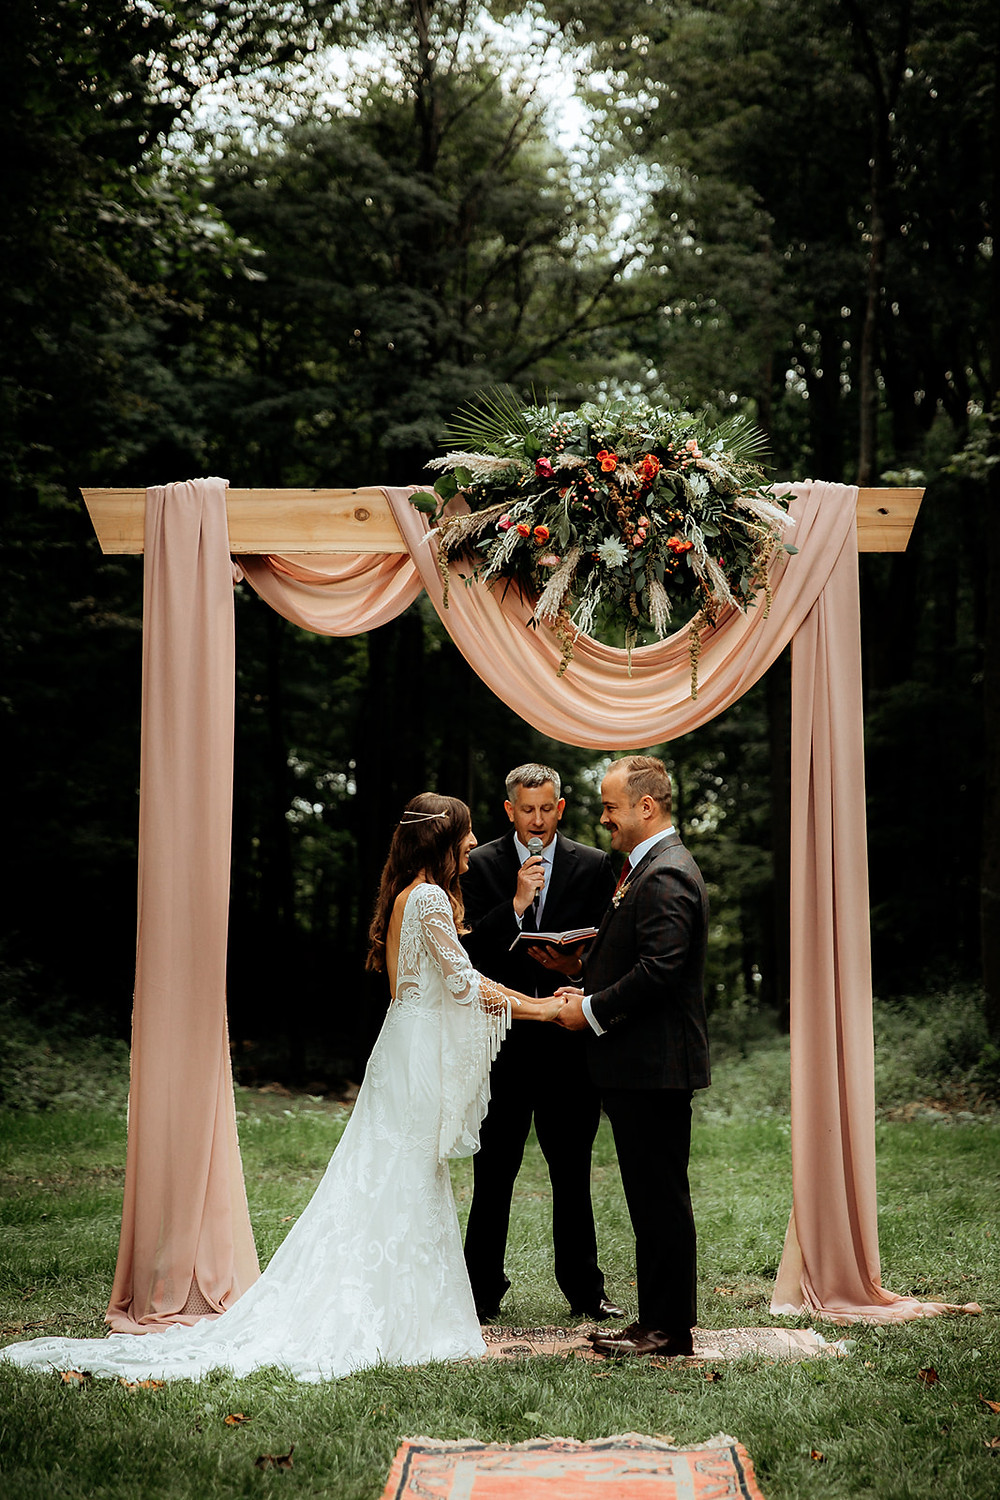 Wedding ceremony ideas: Warm Toned Backyard Wedding on Skaneateles Lake in Spafford, NY featured on Pretty Little Vintage Co.